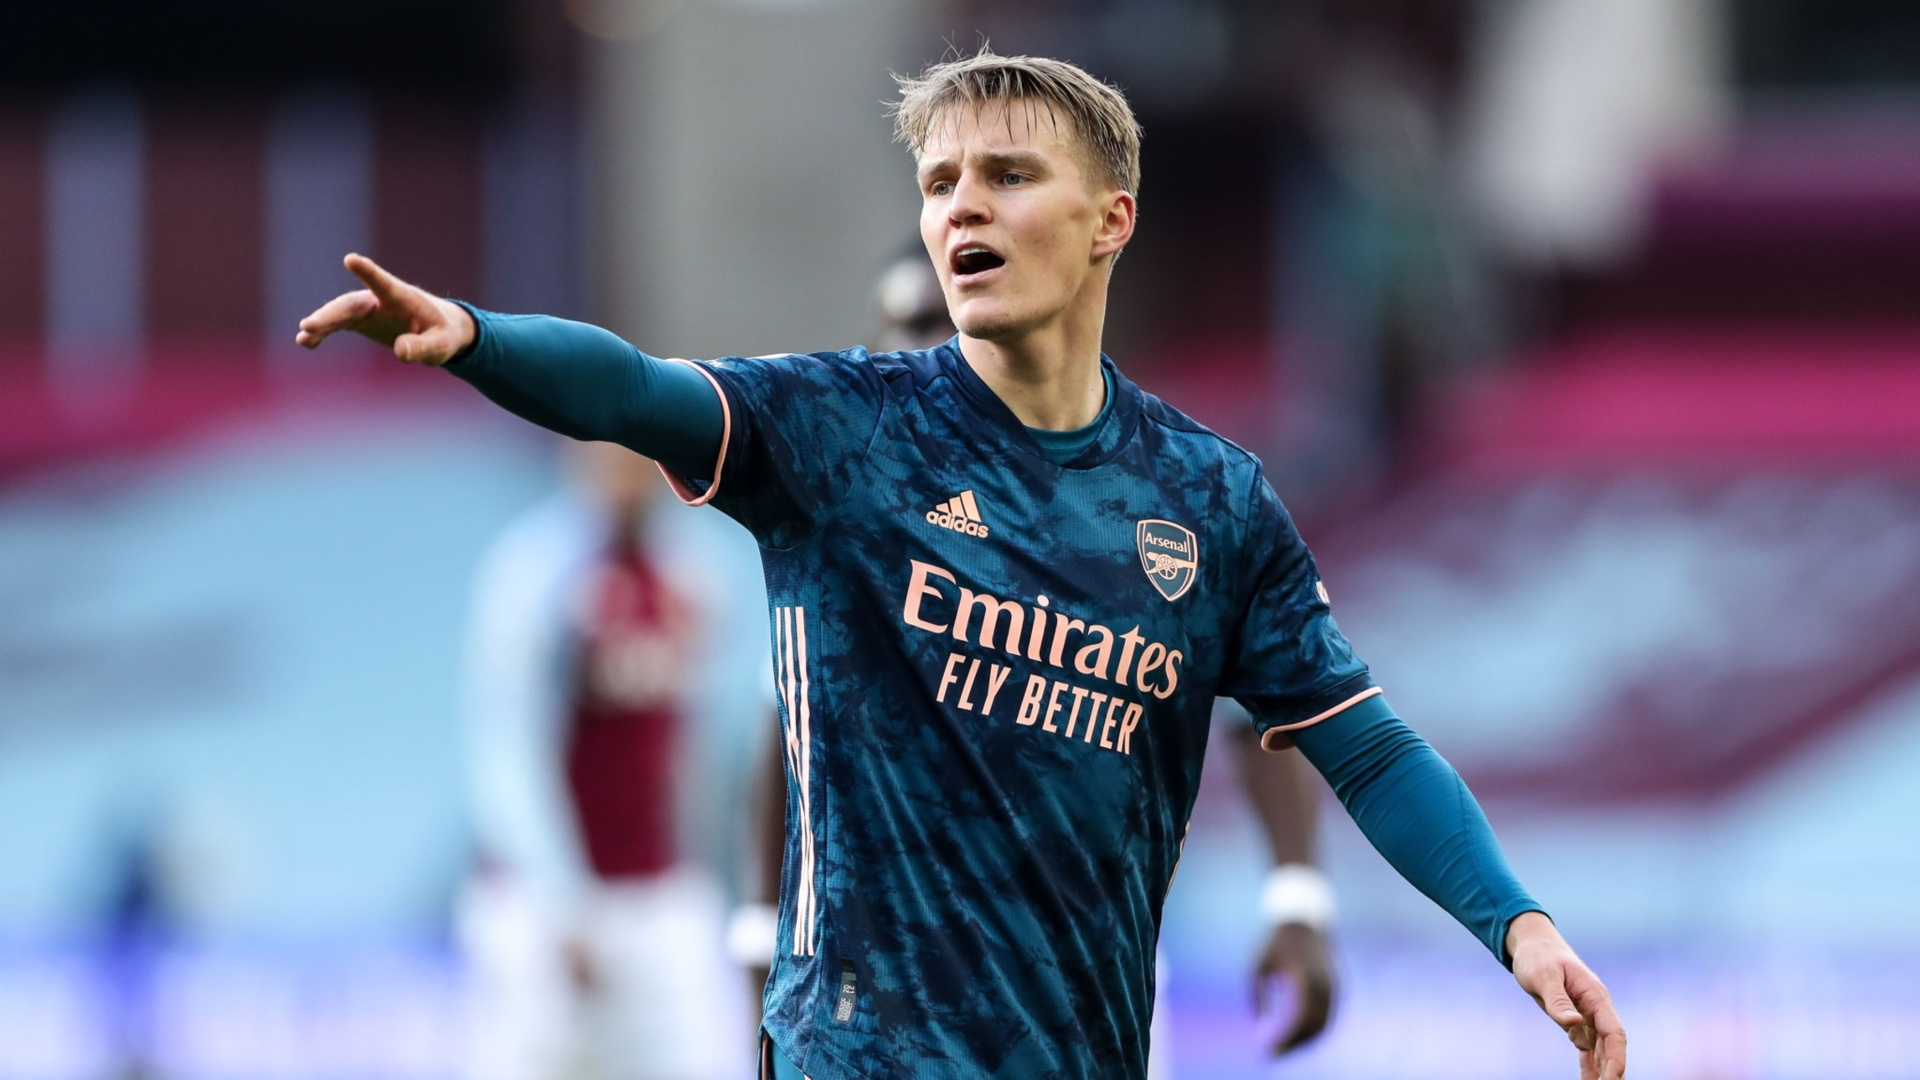 Ødegaard is beginning to feel the warmth at Arsenal